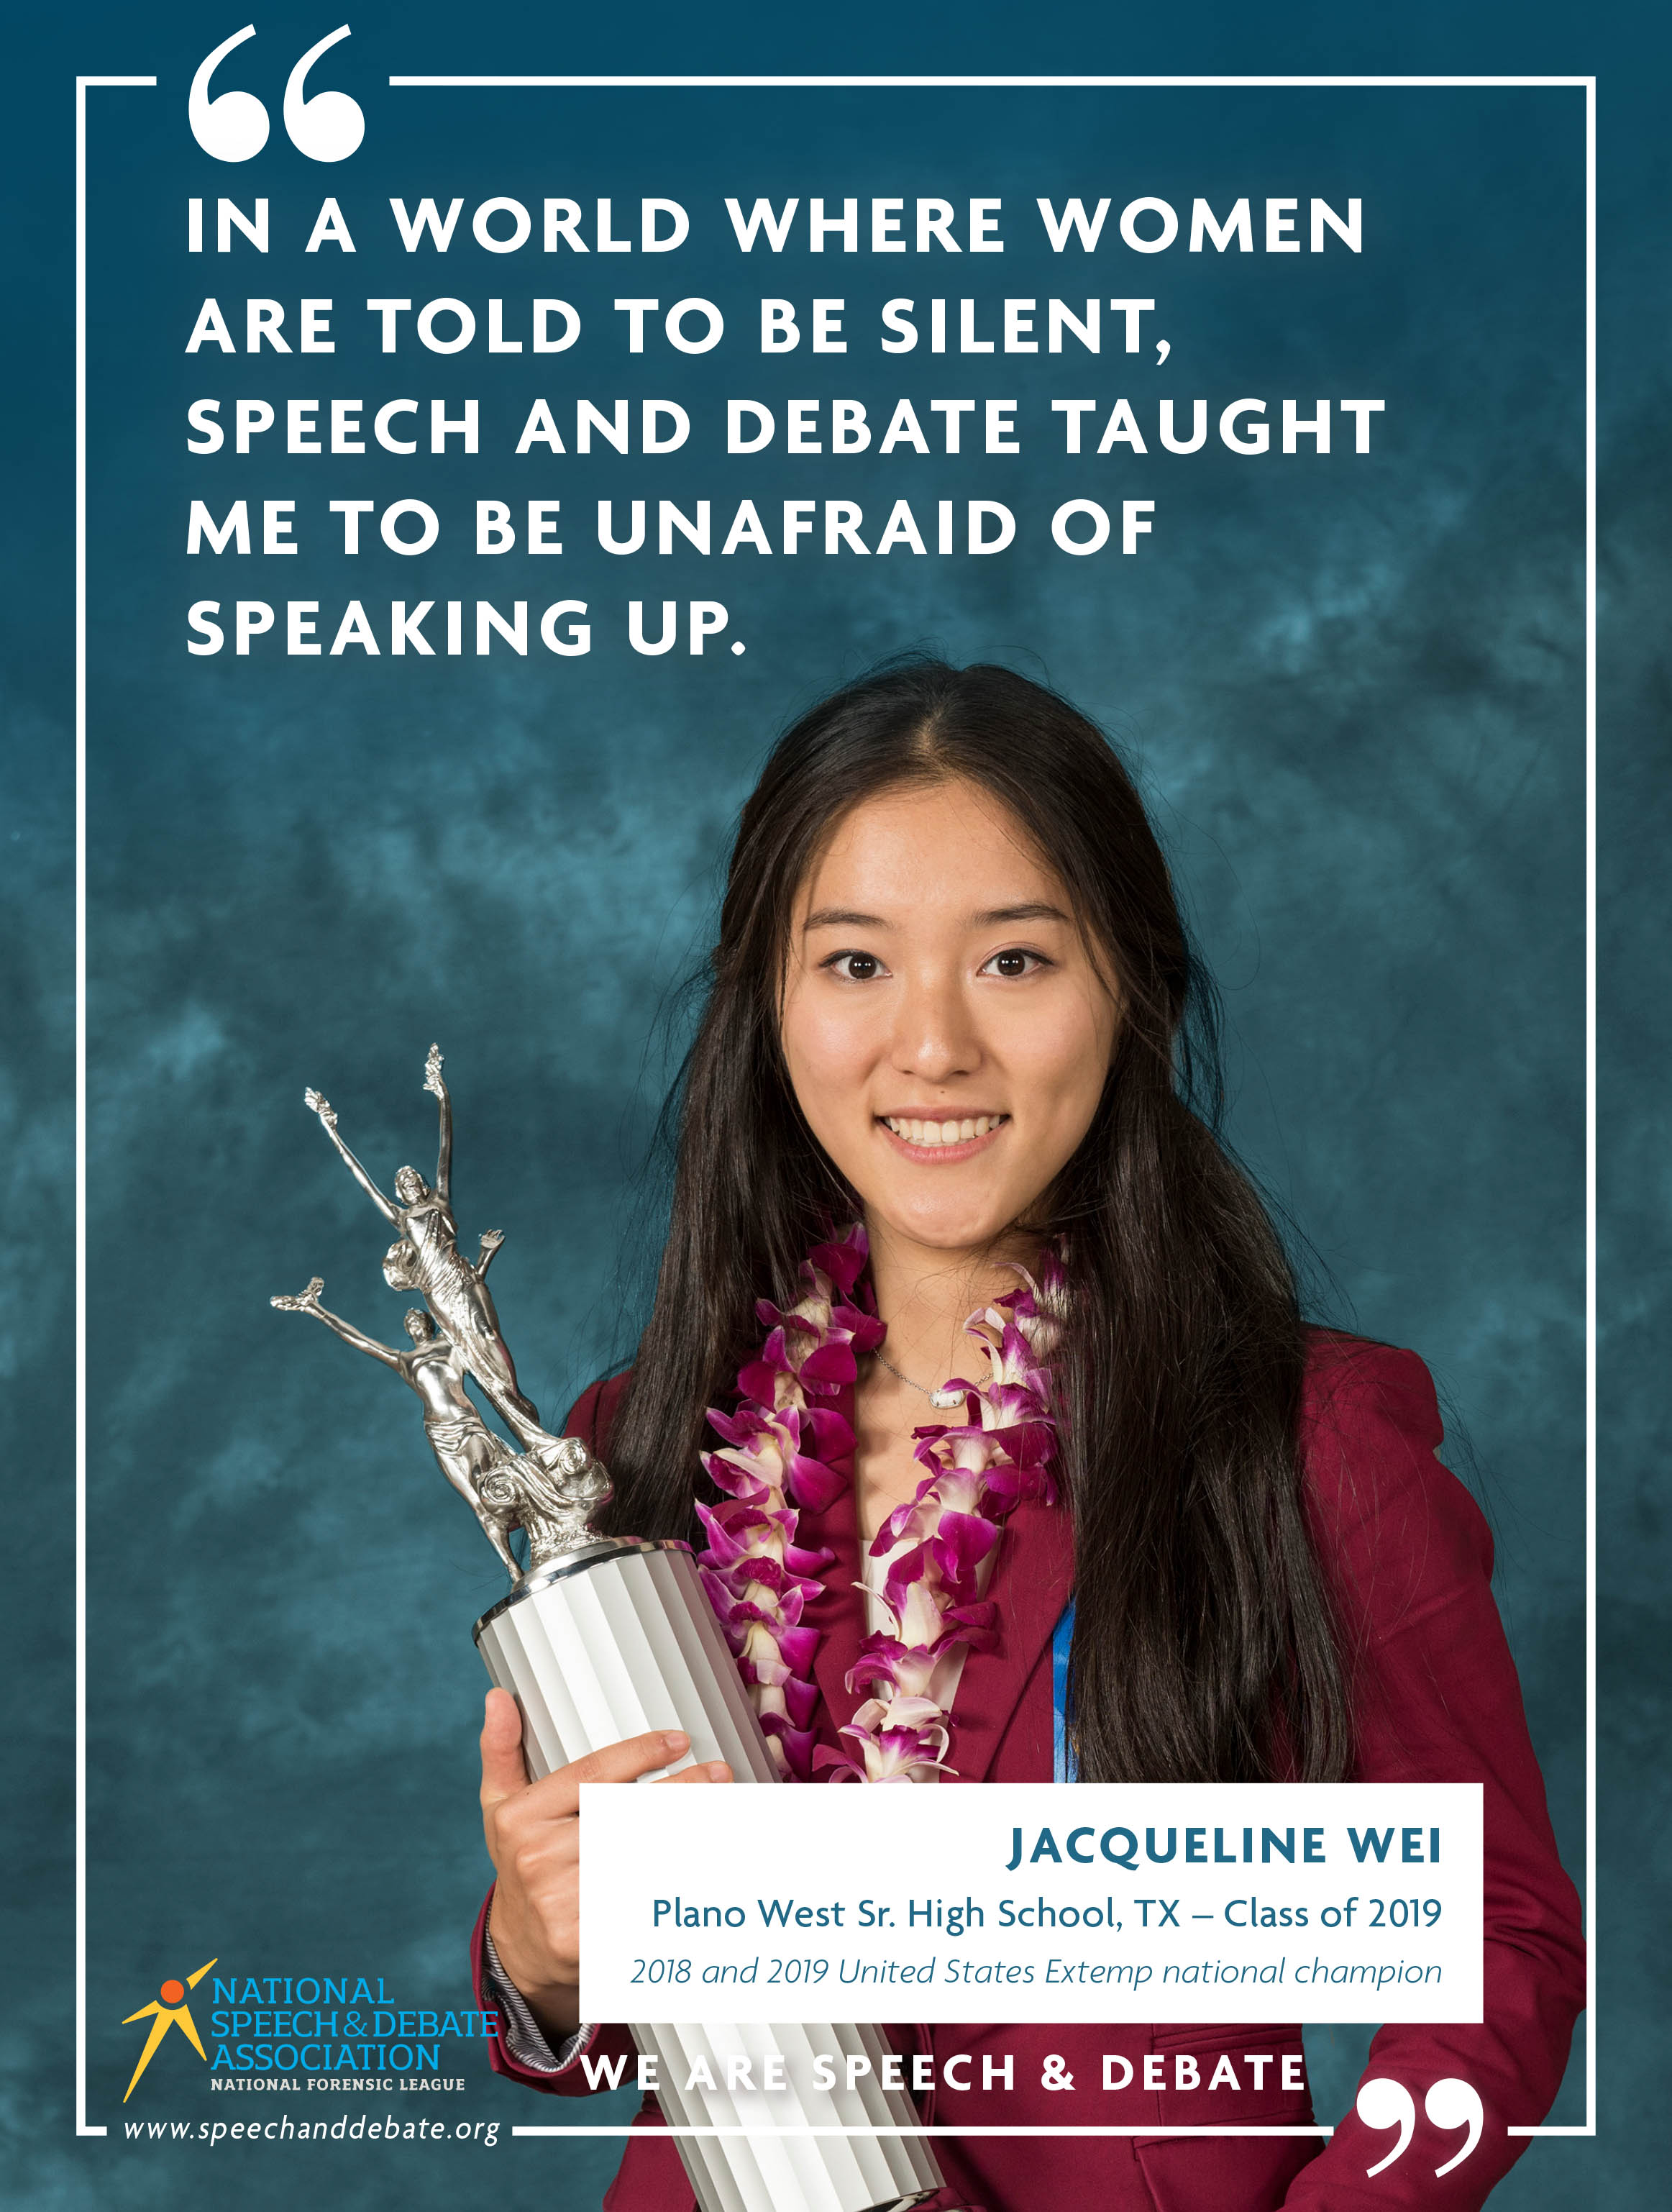 IN A WORLD WHERE WOMEN ARE TOLD TO BE SILENT, SPEECH AND DEBATE TAUGHT ME TO BE UNAFRAID OF SPEAKING UP. - Jacqueline Wei